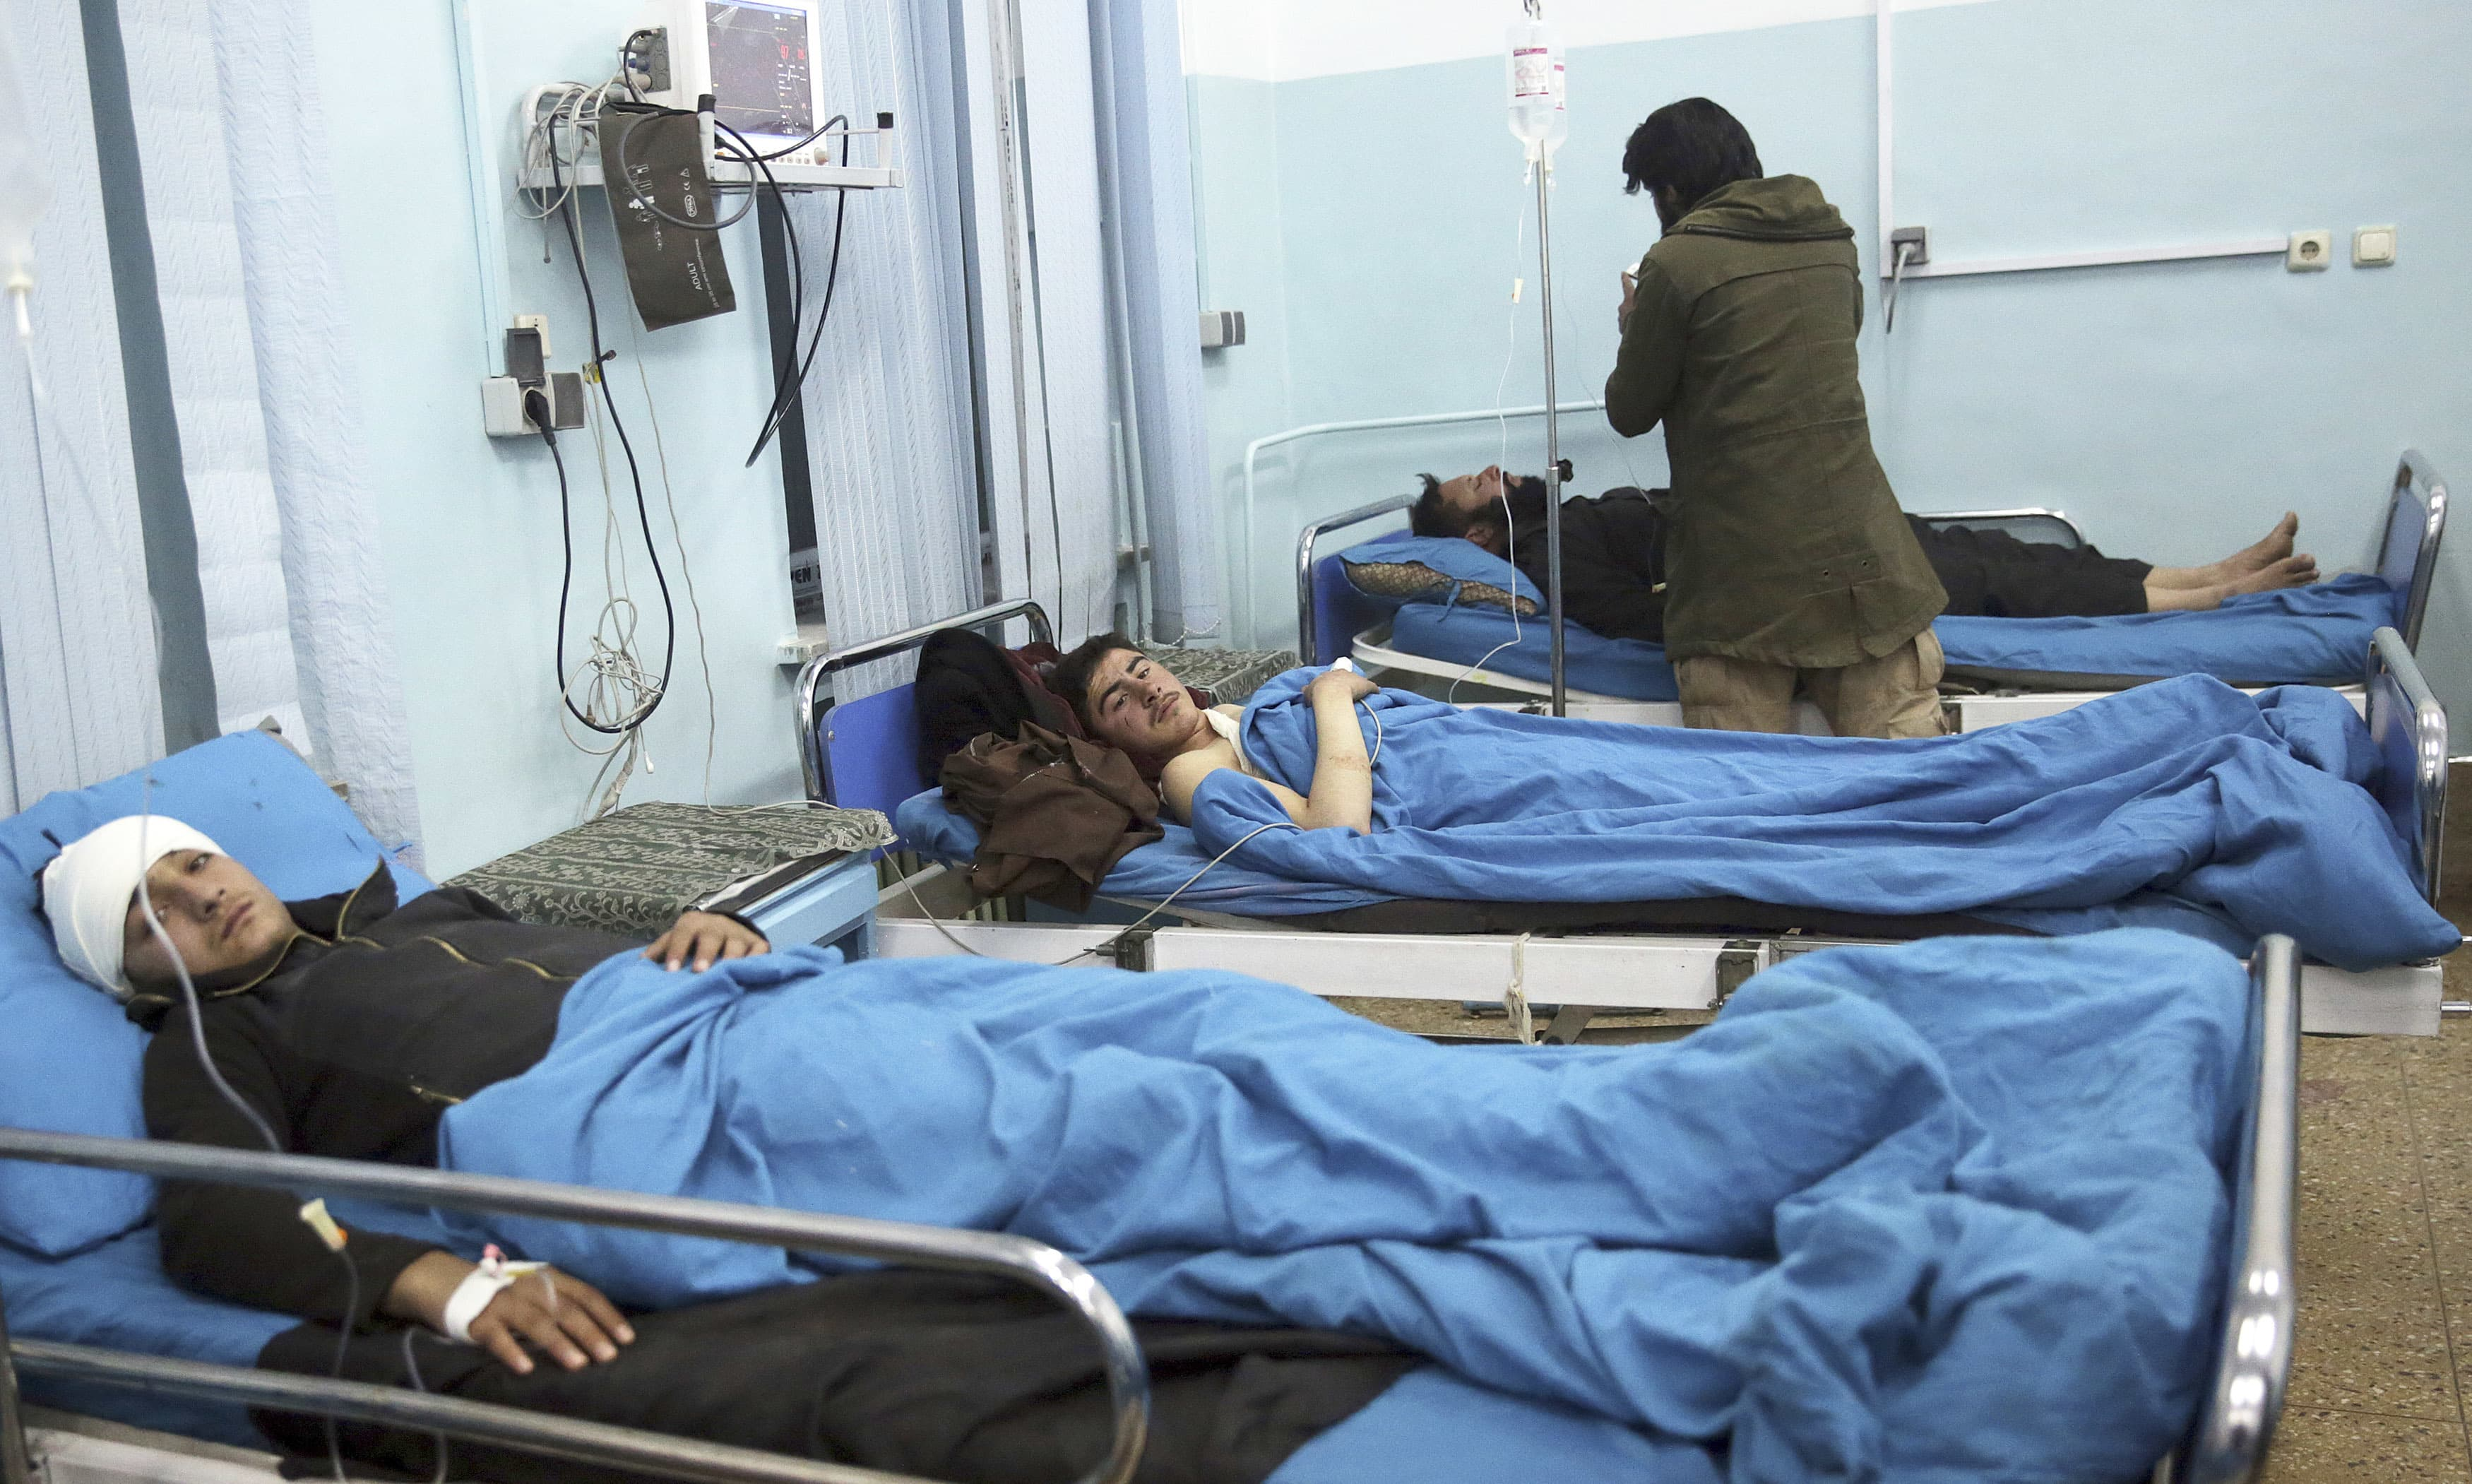 Wounded men lie on beds in a hospital in Kabul. —AP